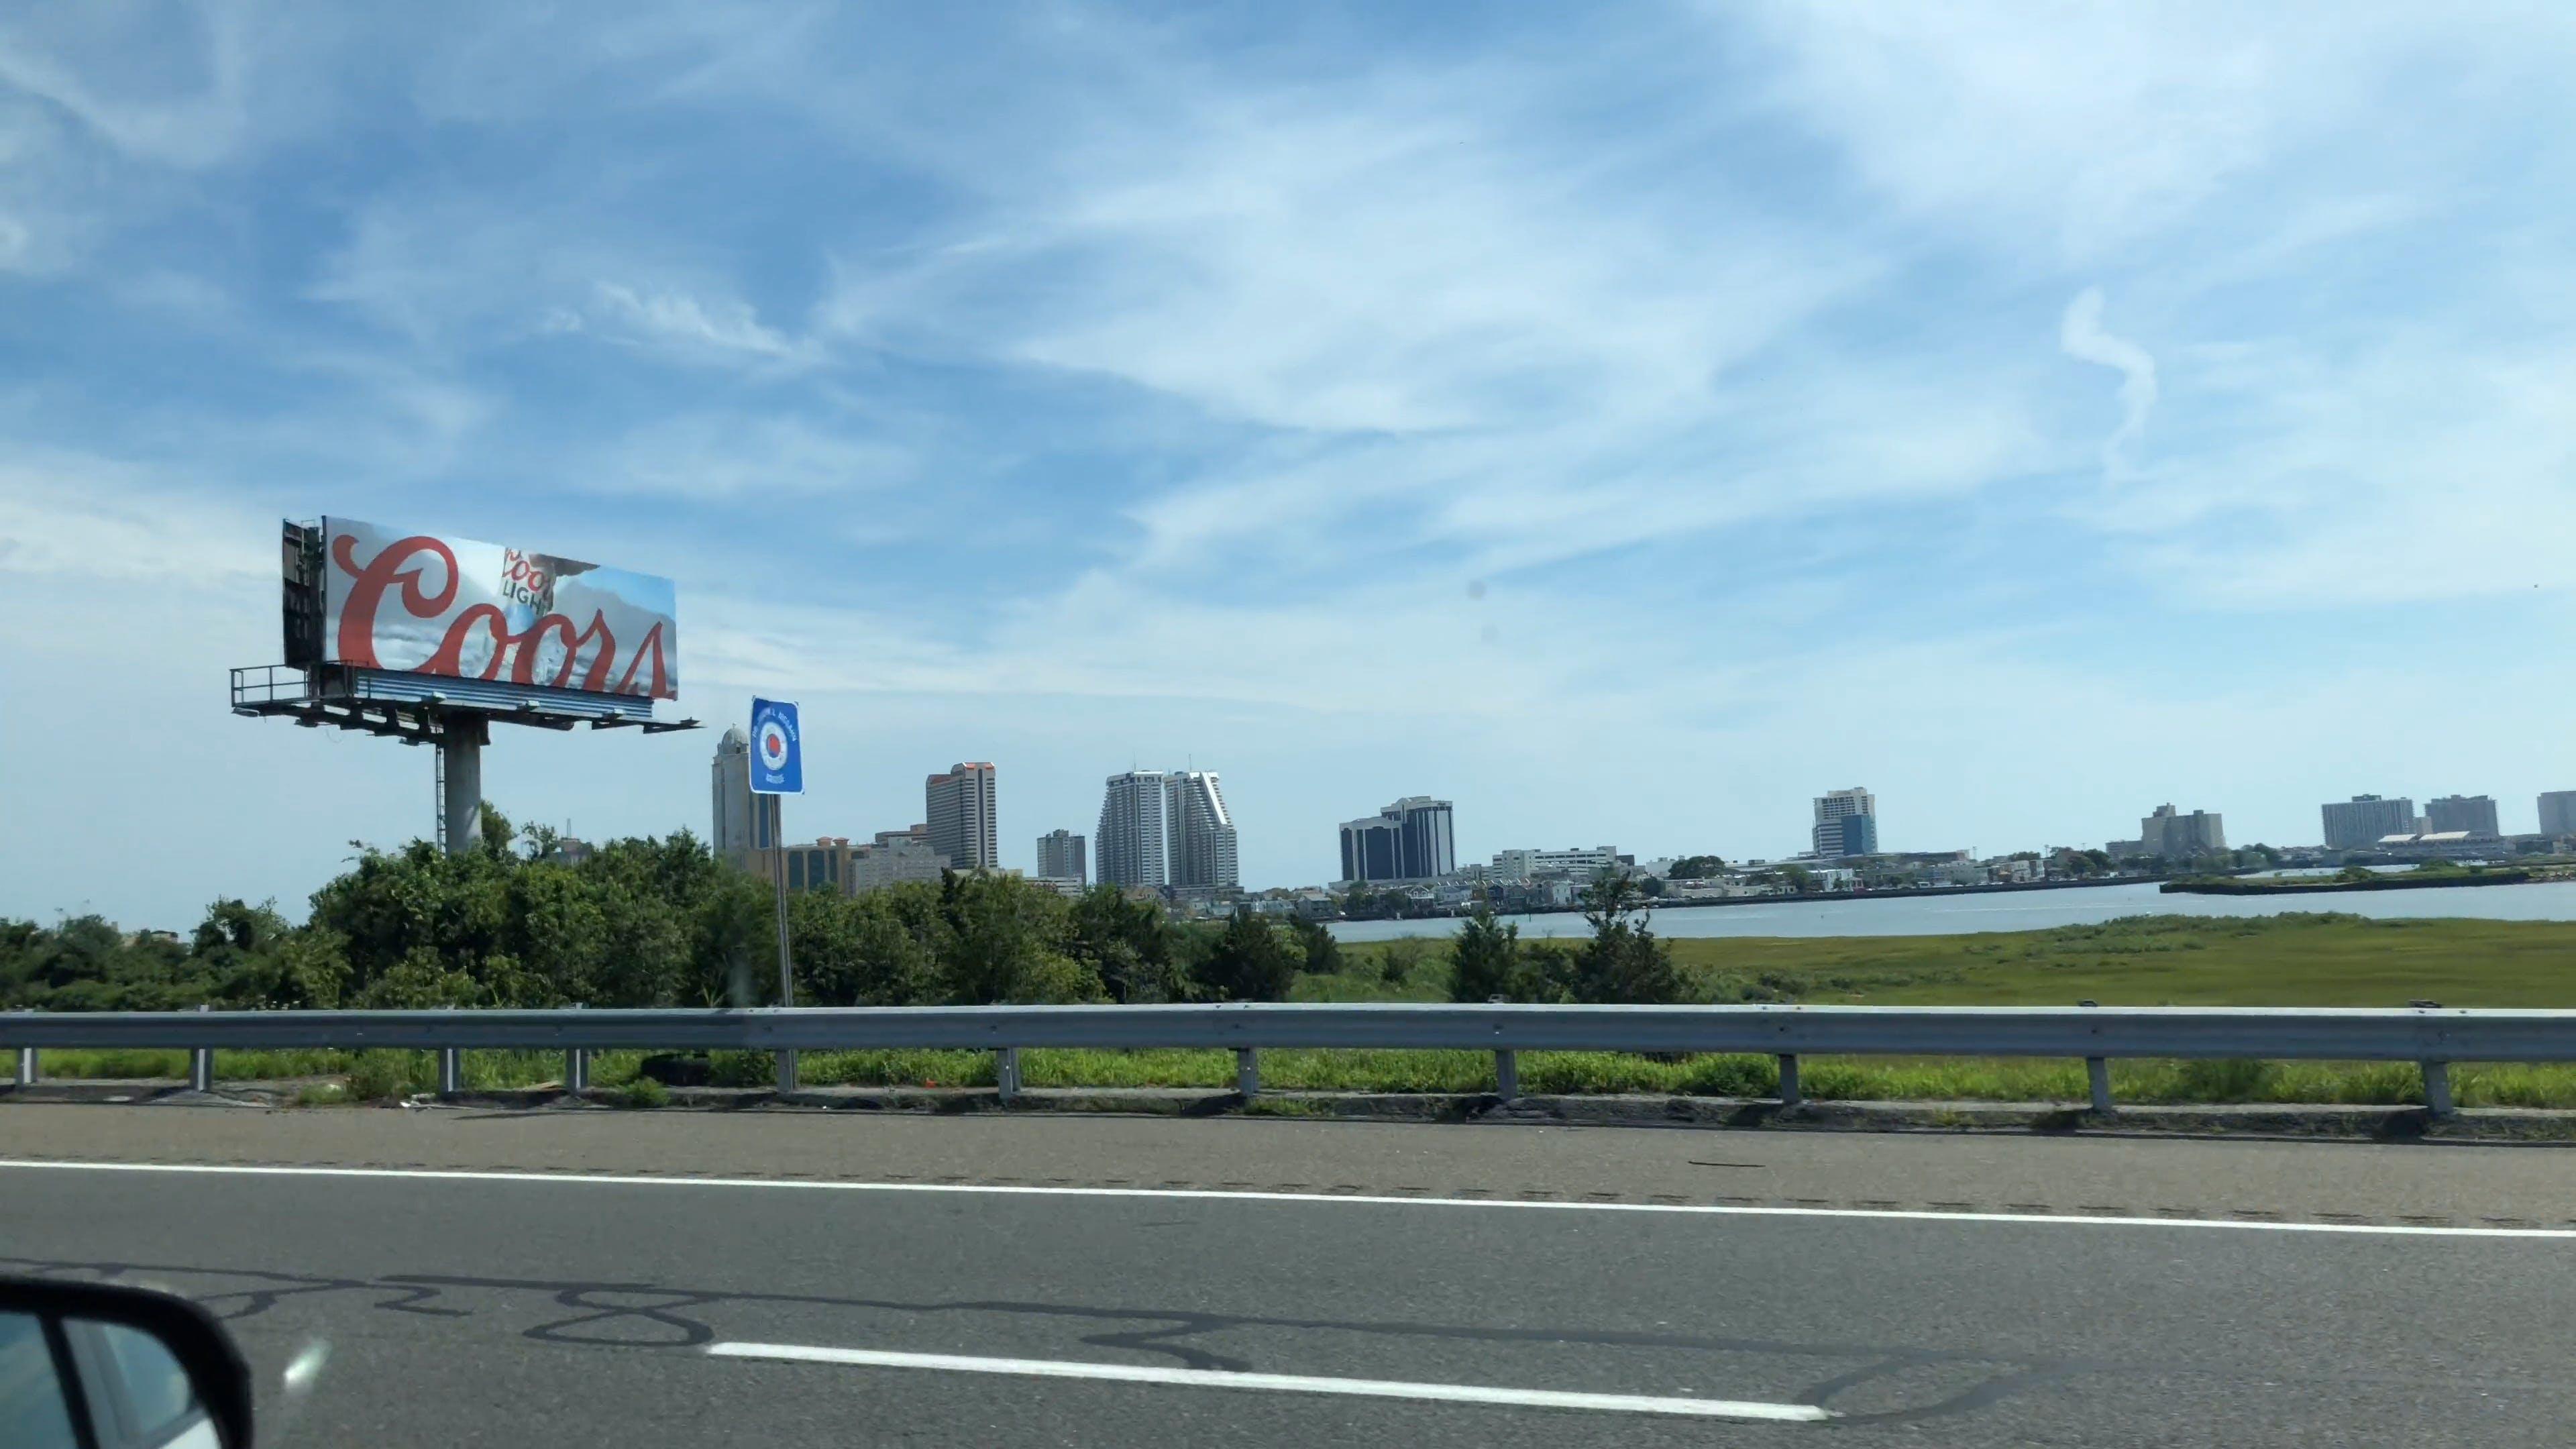 View Of City From Moving Vehicle